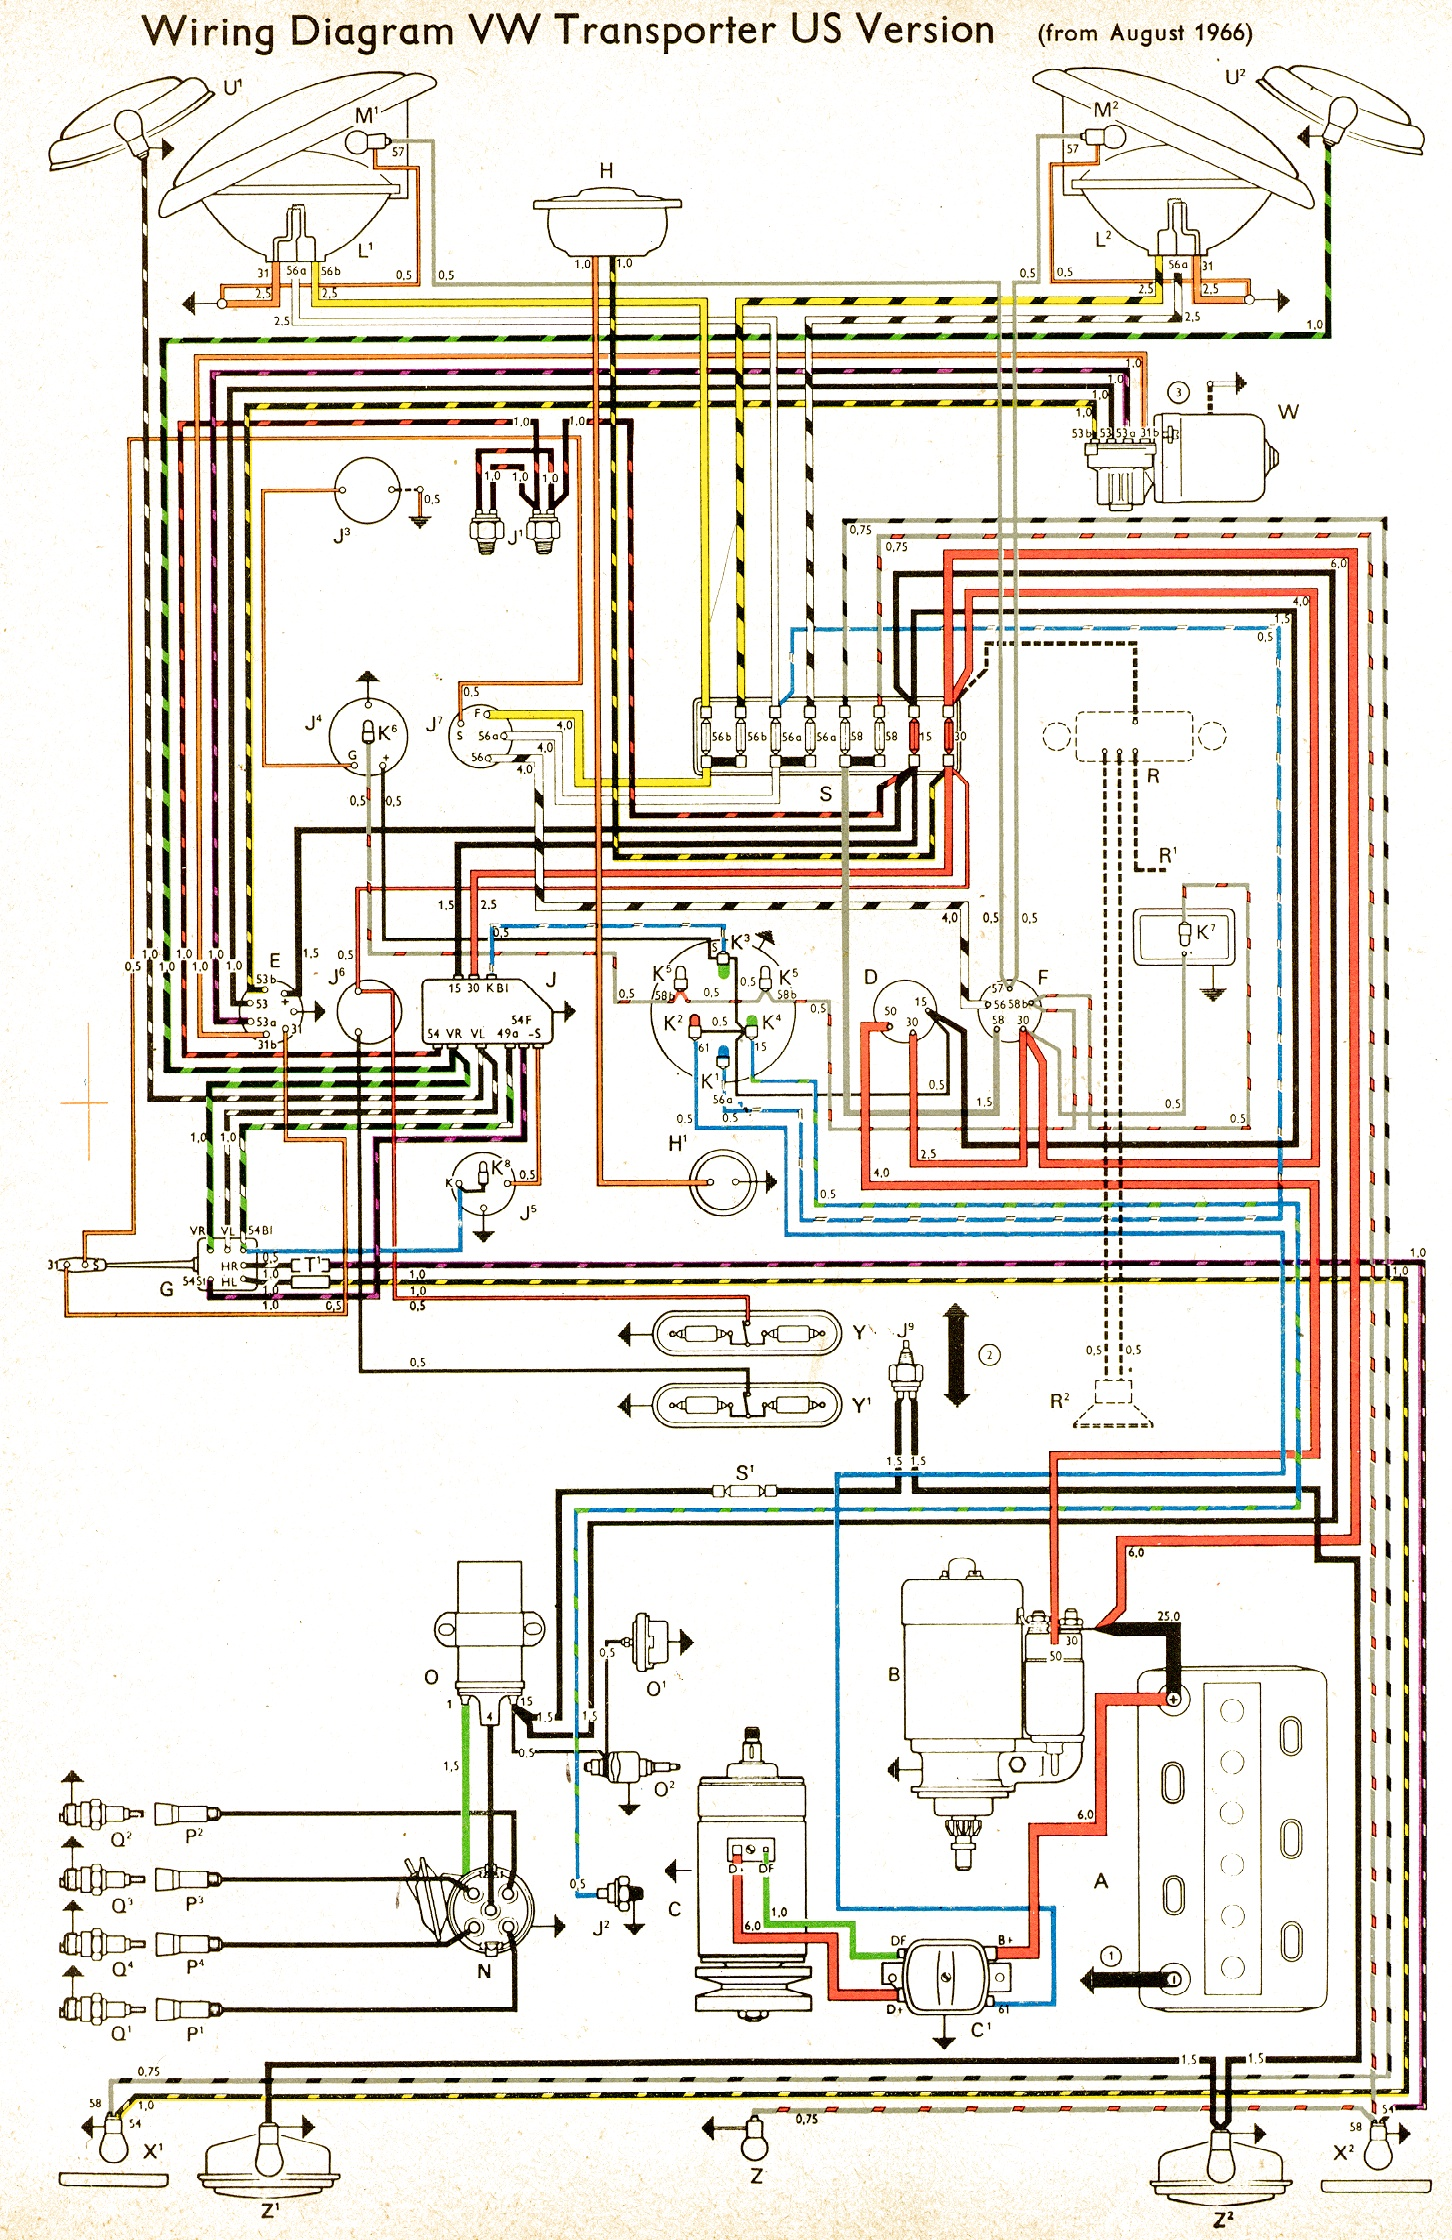 Bus Wiring Diagrams - Schema Wiring Diagram